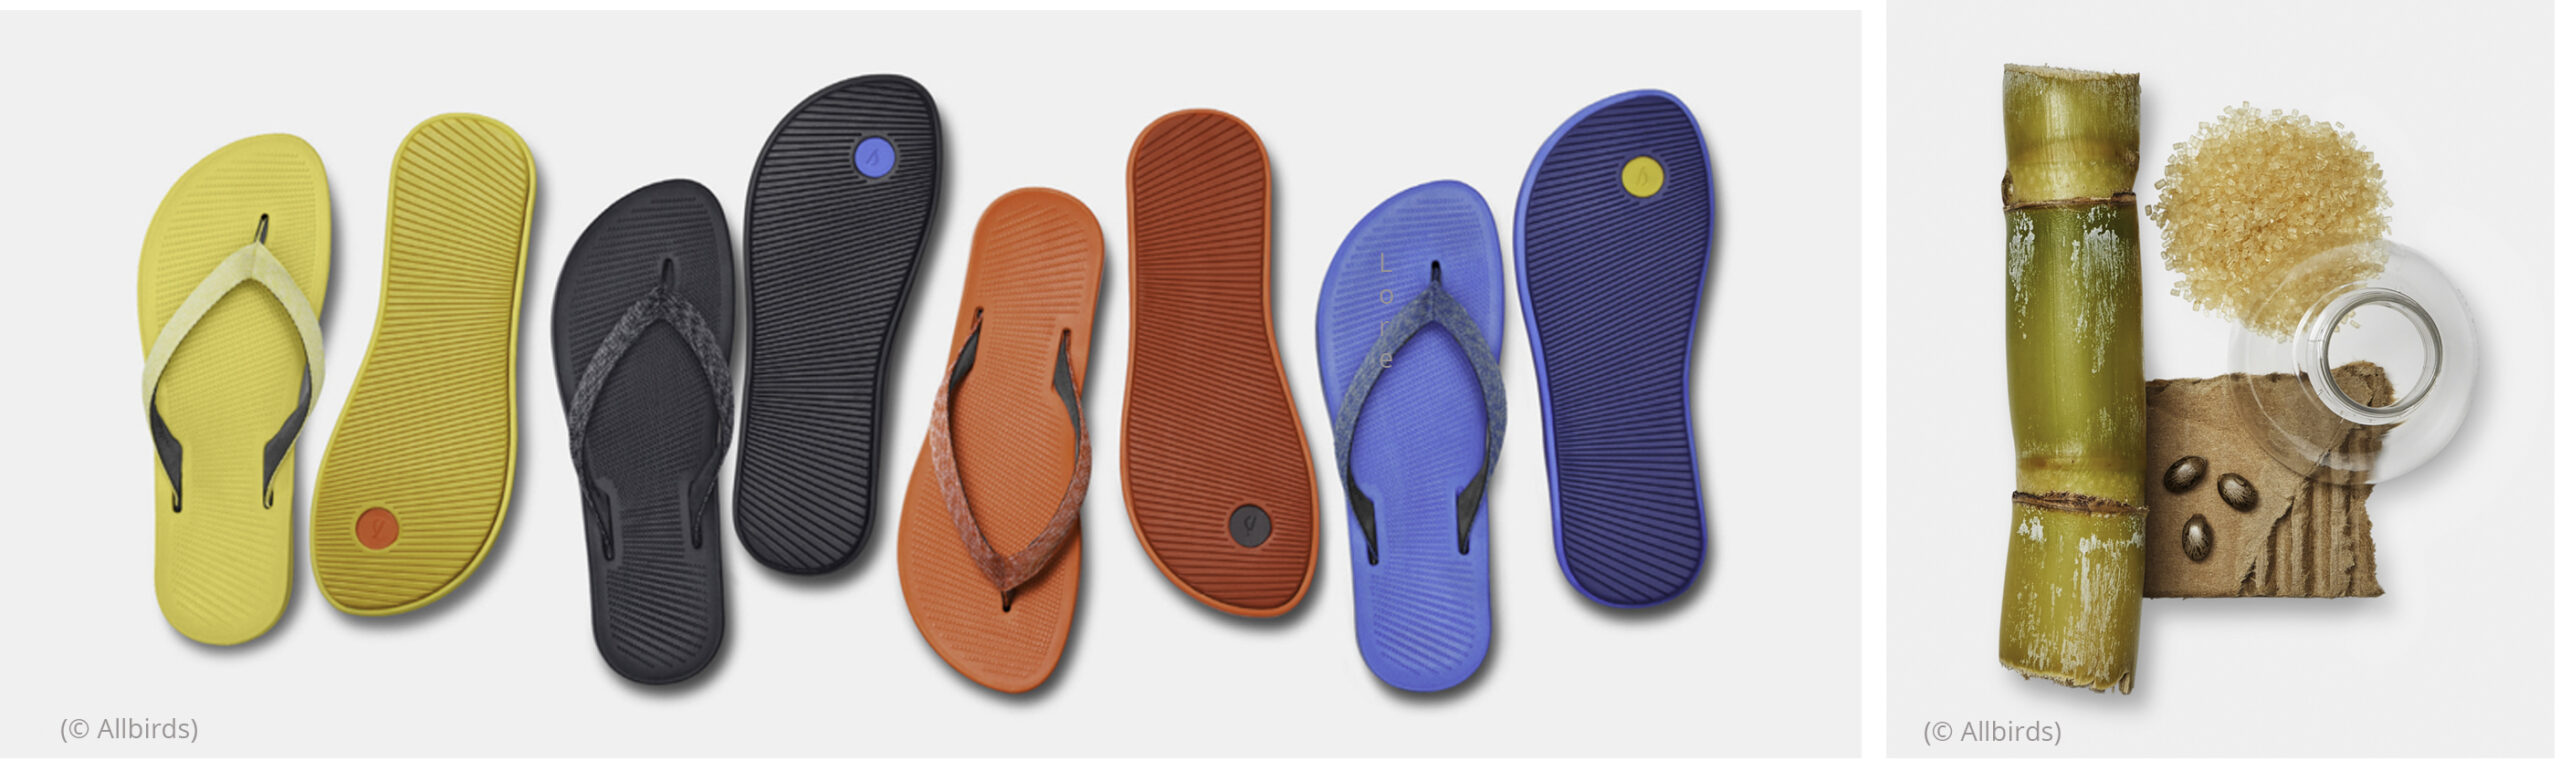 Left: Line of colorful flip-flops on white background. Right: Sugar cane and other materials used to manufacture flip-flops (© Allbirds)